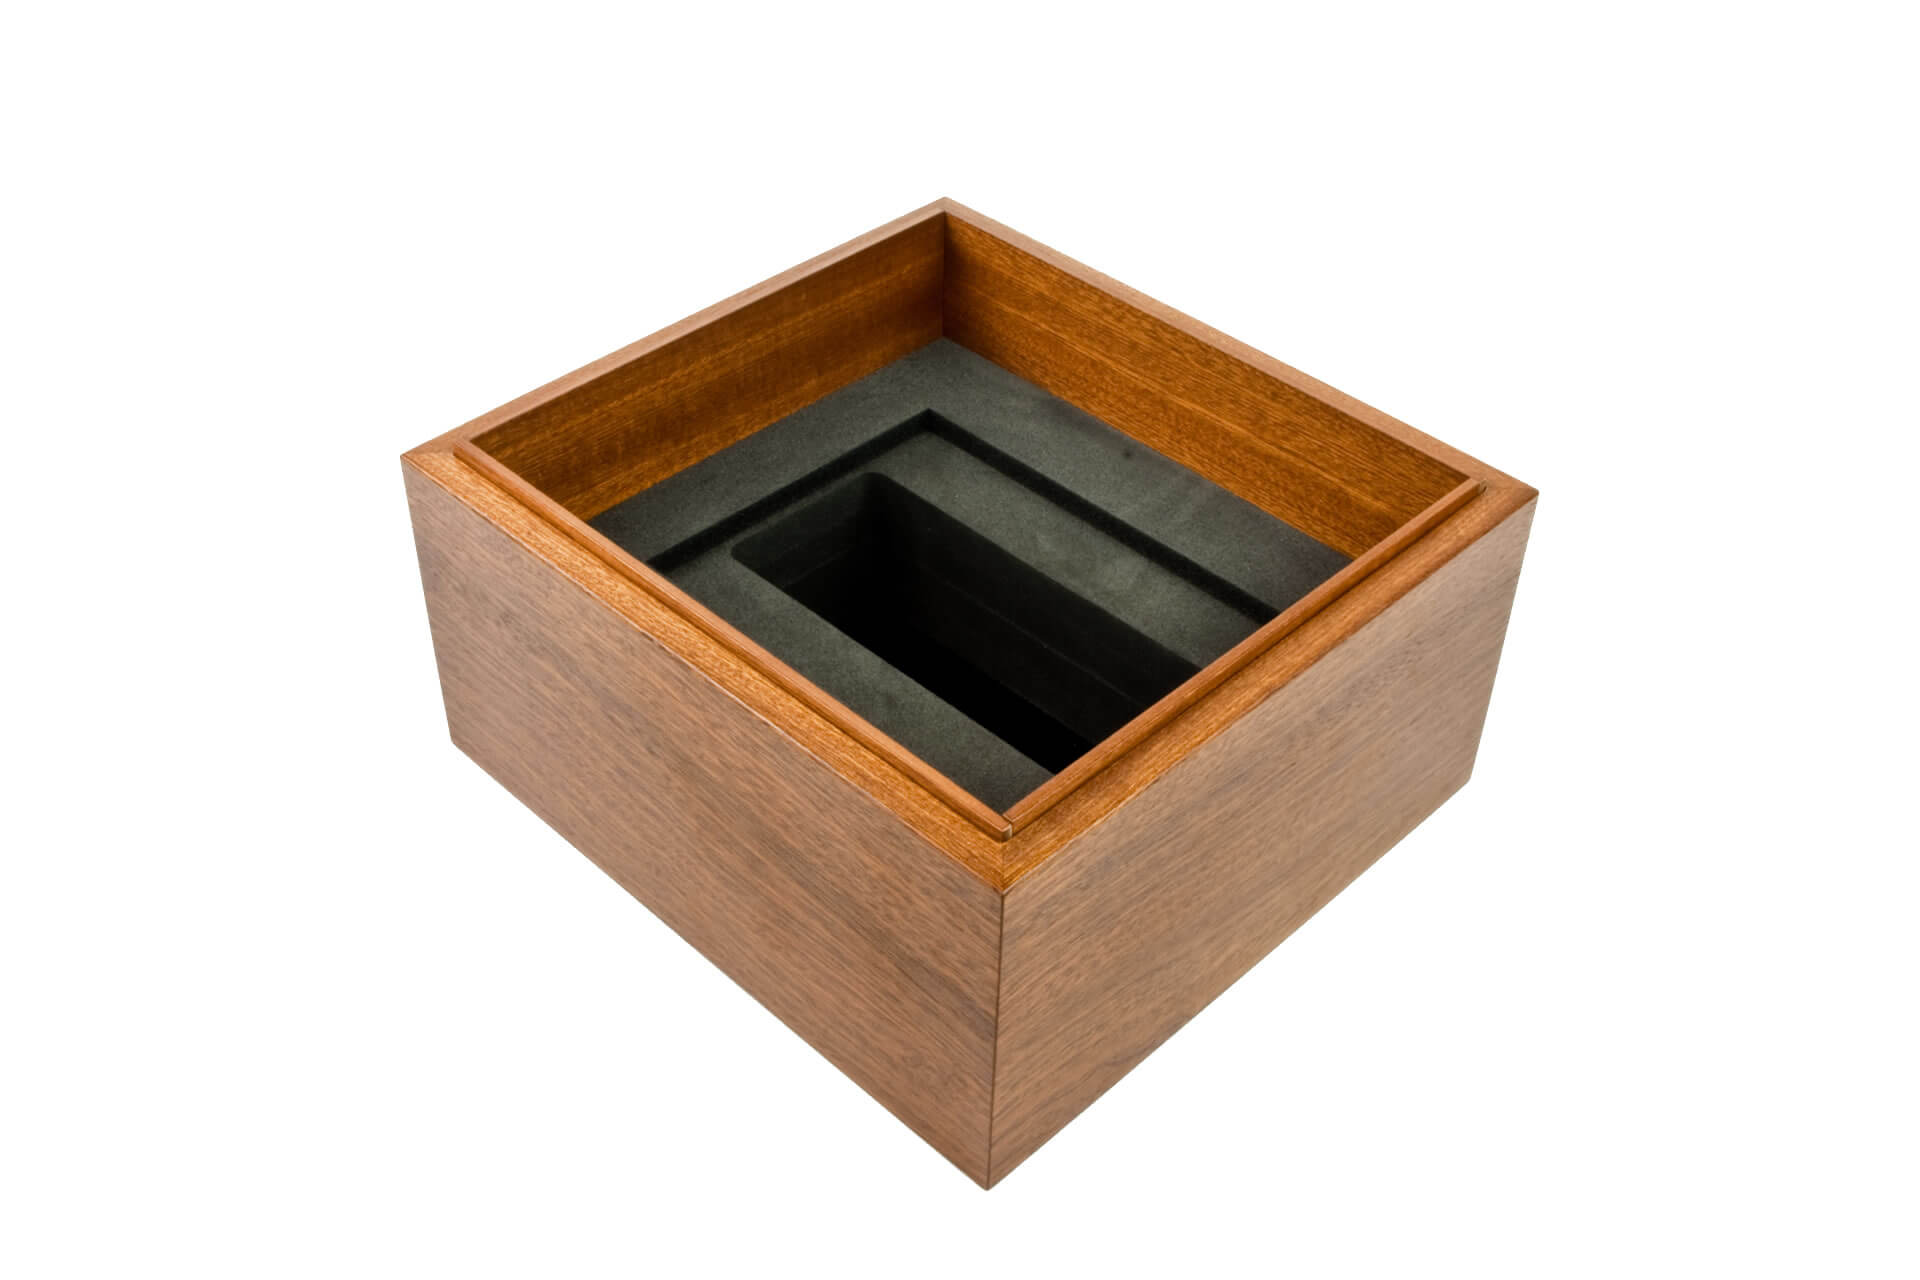 bespoke wooden packaging box lift off lid mahogany clear lacquer internal detail level 1